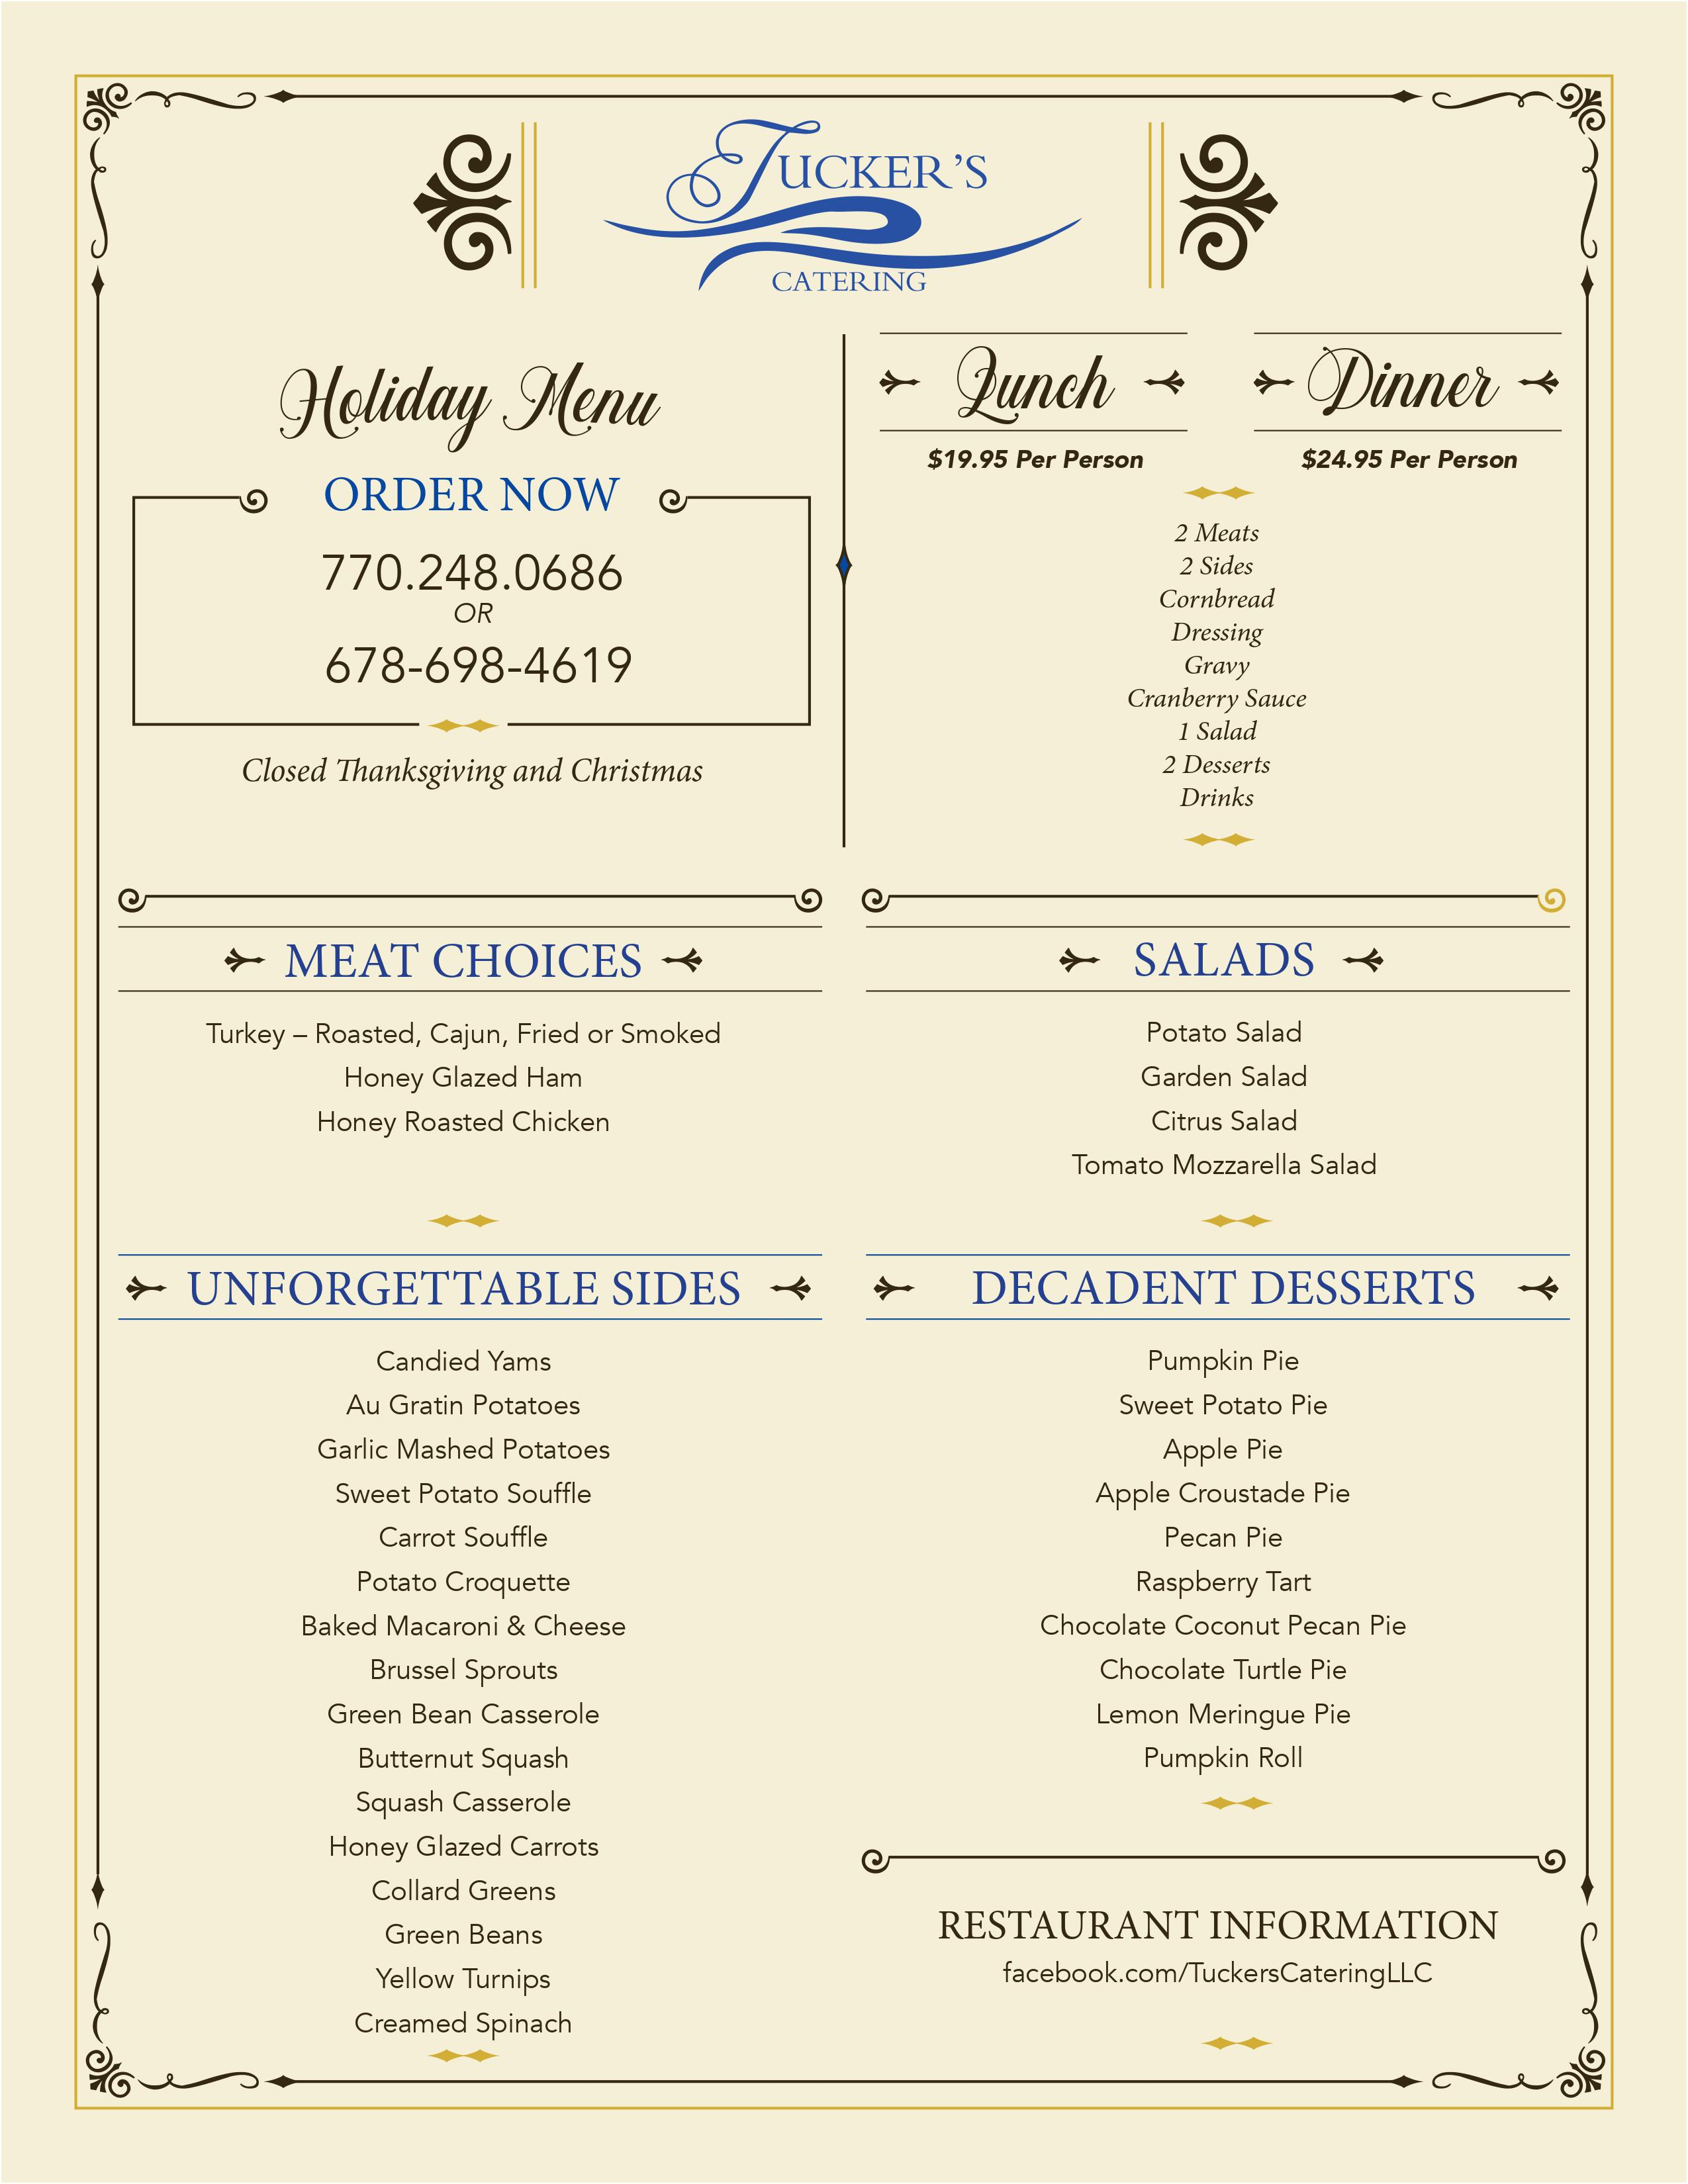 Tucker Catering Menu Holidays 2020 page 1